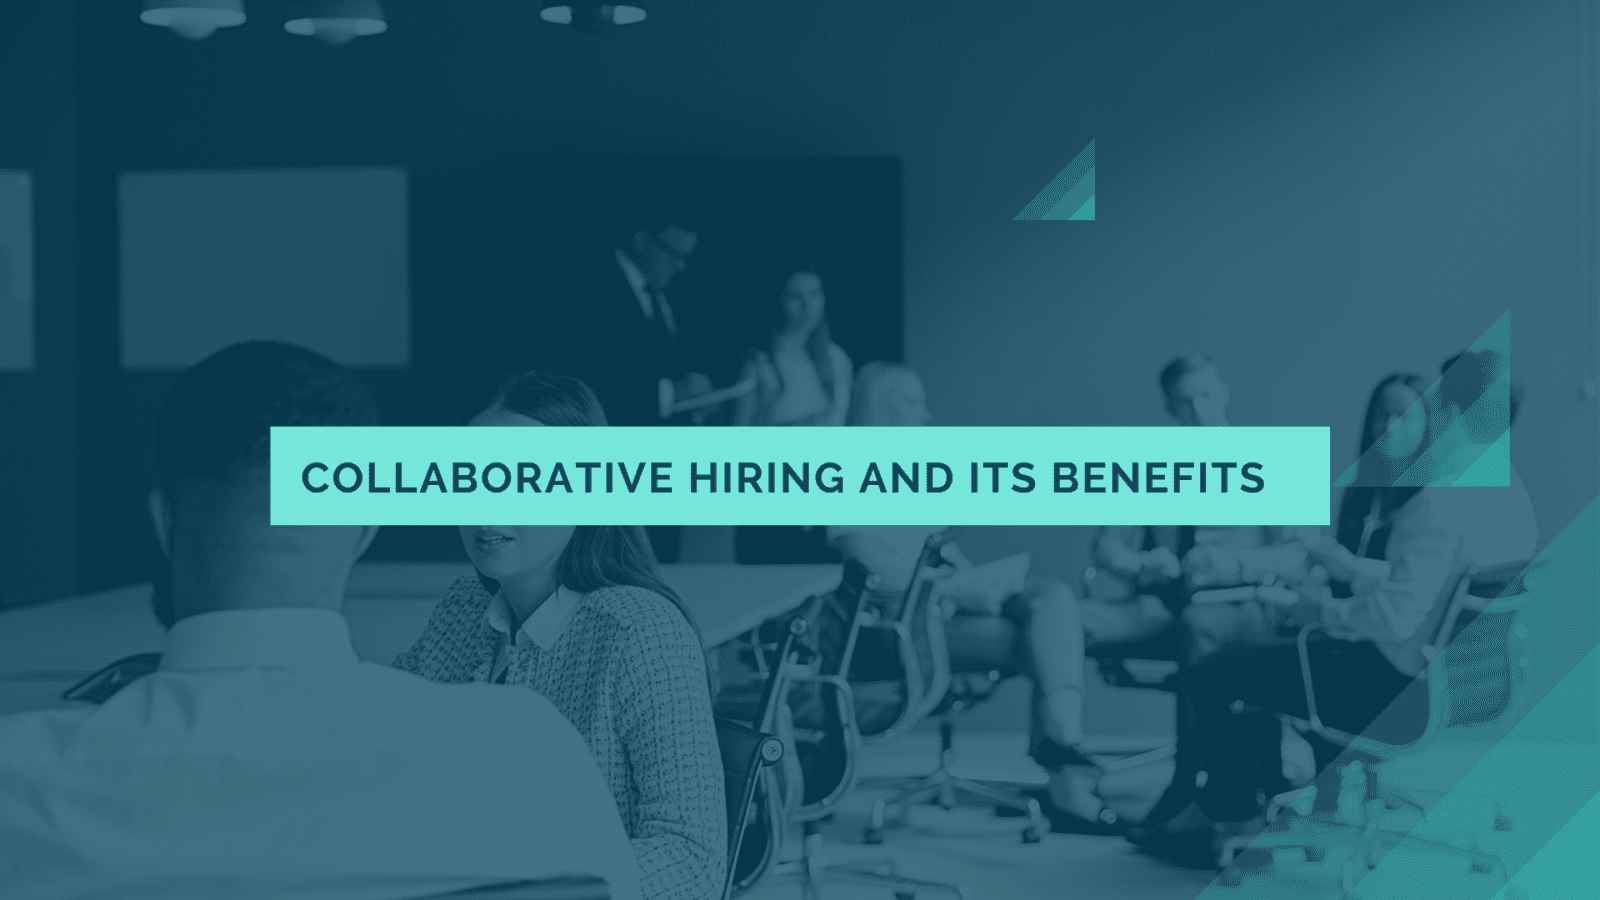 What is collaborative hiring and its benefits? What are some benefits of collaborative hiring? What is collaborative hiring? A complete guide to collaborative hiring.